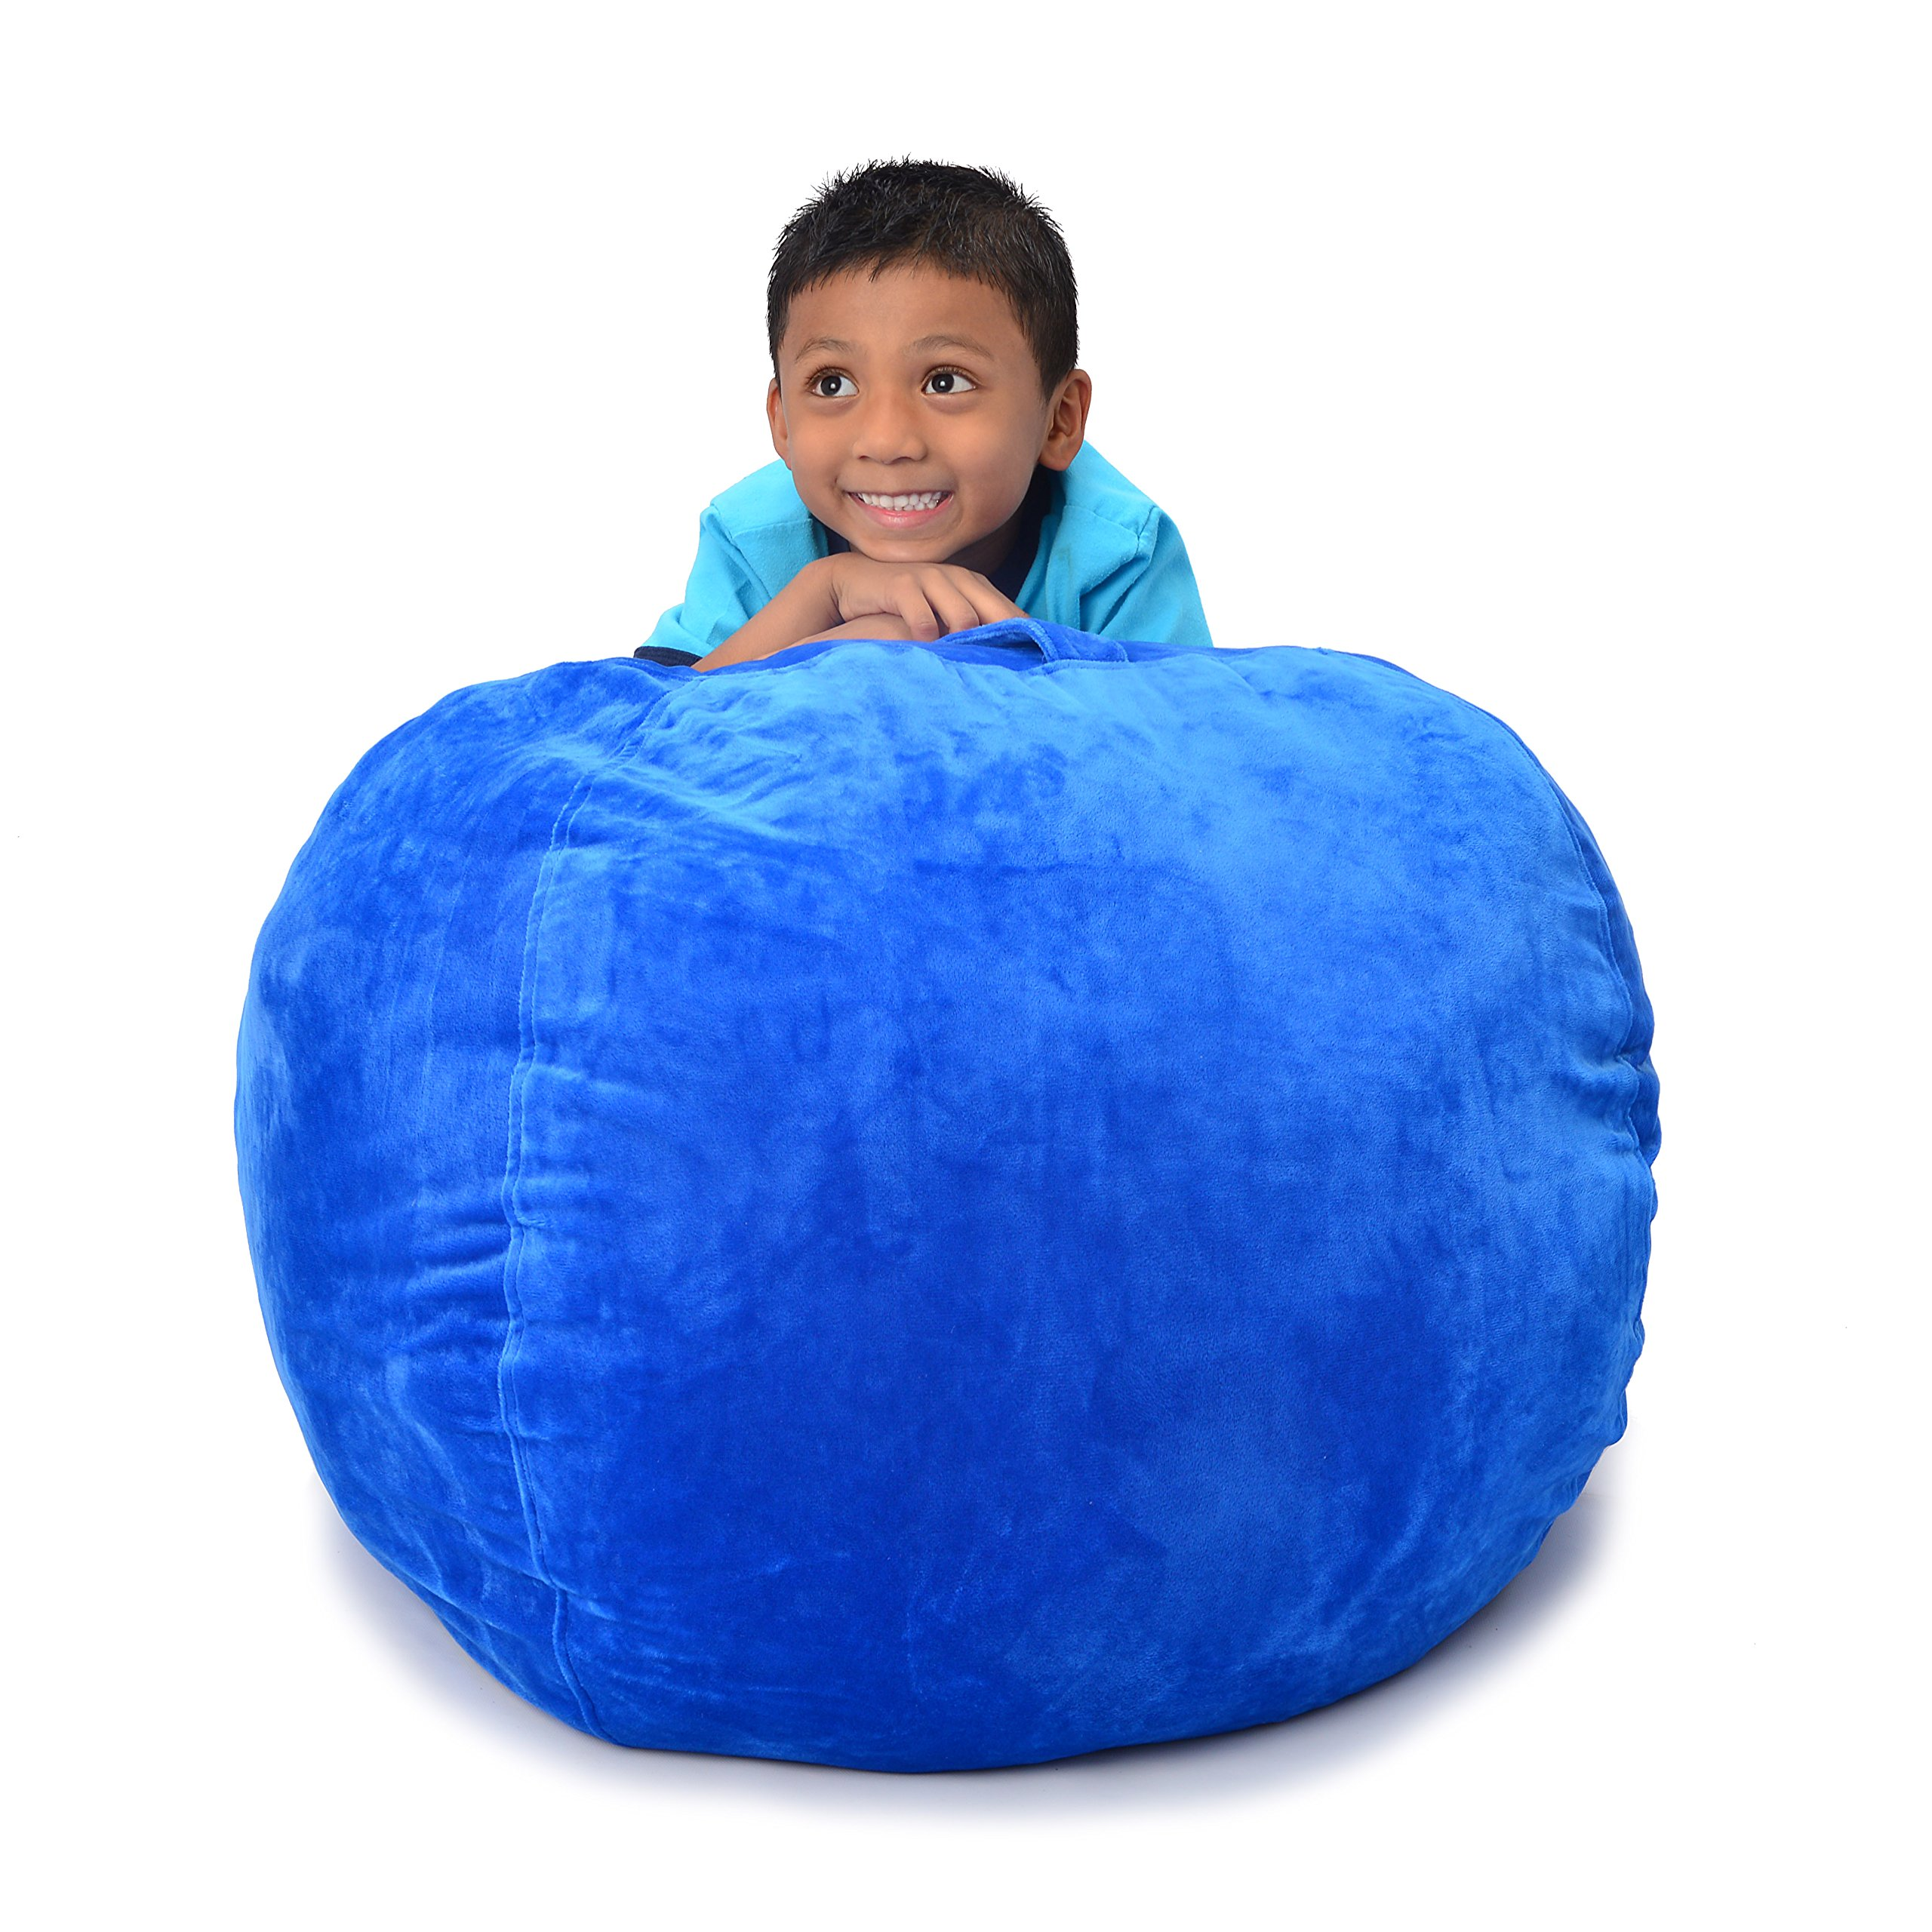 ddmy import inc Stuffed Animal Storage Bean Bag Blue Extra Large 38 Inch Size Extra Soft Perfect Storage Solution For Kids Stuffed Animals Toys Or Household Supplies Kids Organizer